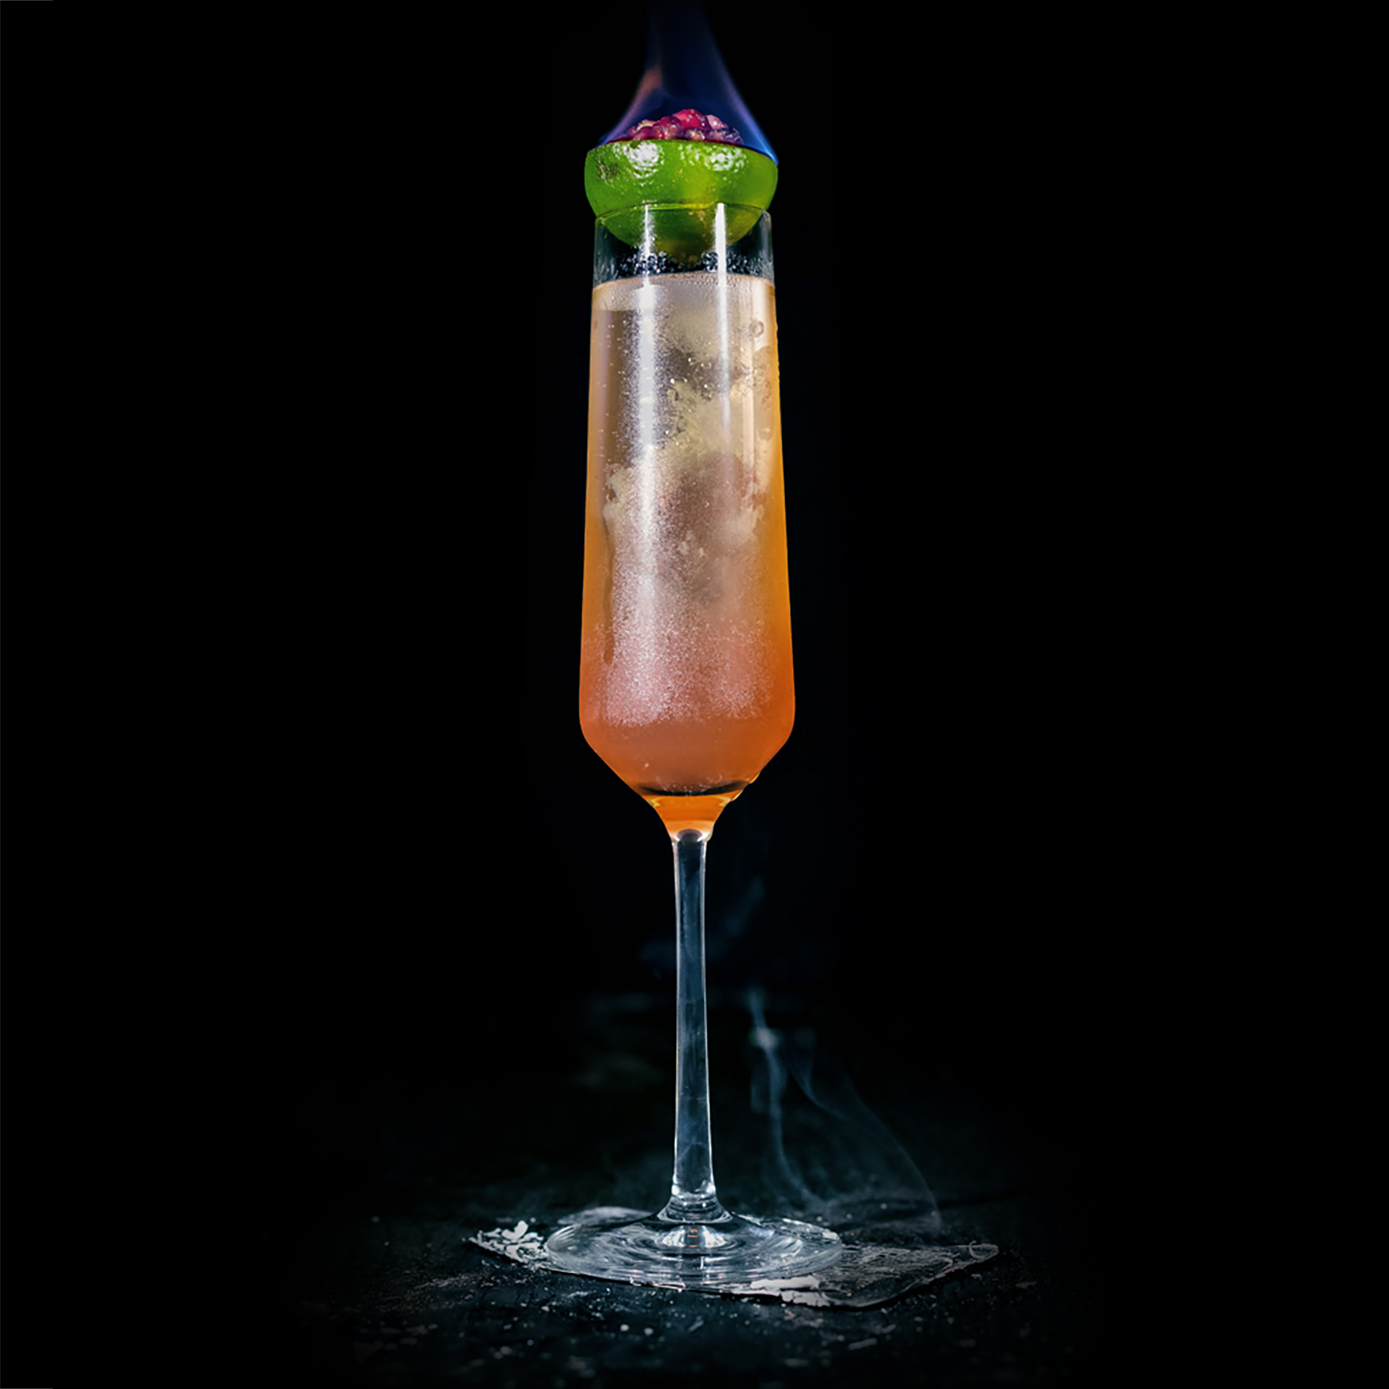 SMOKE & BUBBLES  INGREDIENTS  - 1 oz. El Silencio Espadin - .5 oz. Grenadine - .5 oz. Fresh Lime Juice - .5 oz. Fresh Orange Juice  METHOD  Shake with ice & strain into a chilled champagne flute Top up with 1 oz. champagne and garnish with a lime wheel